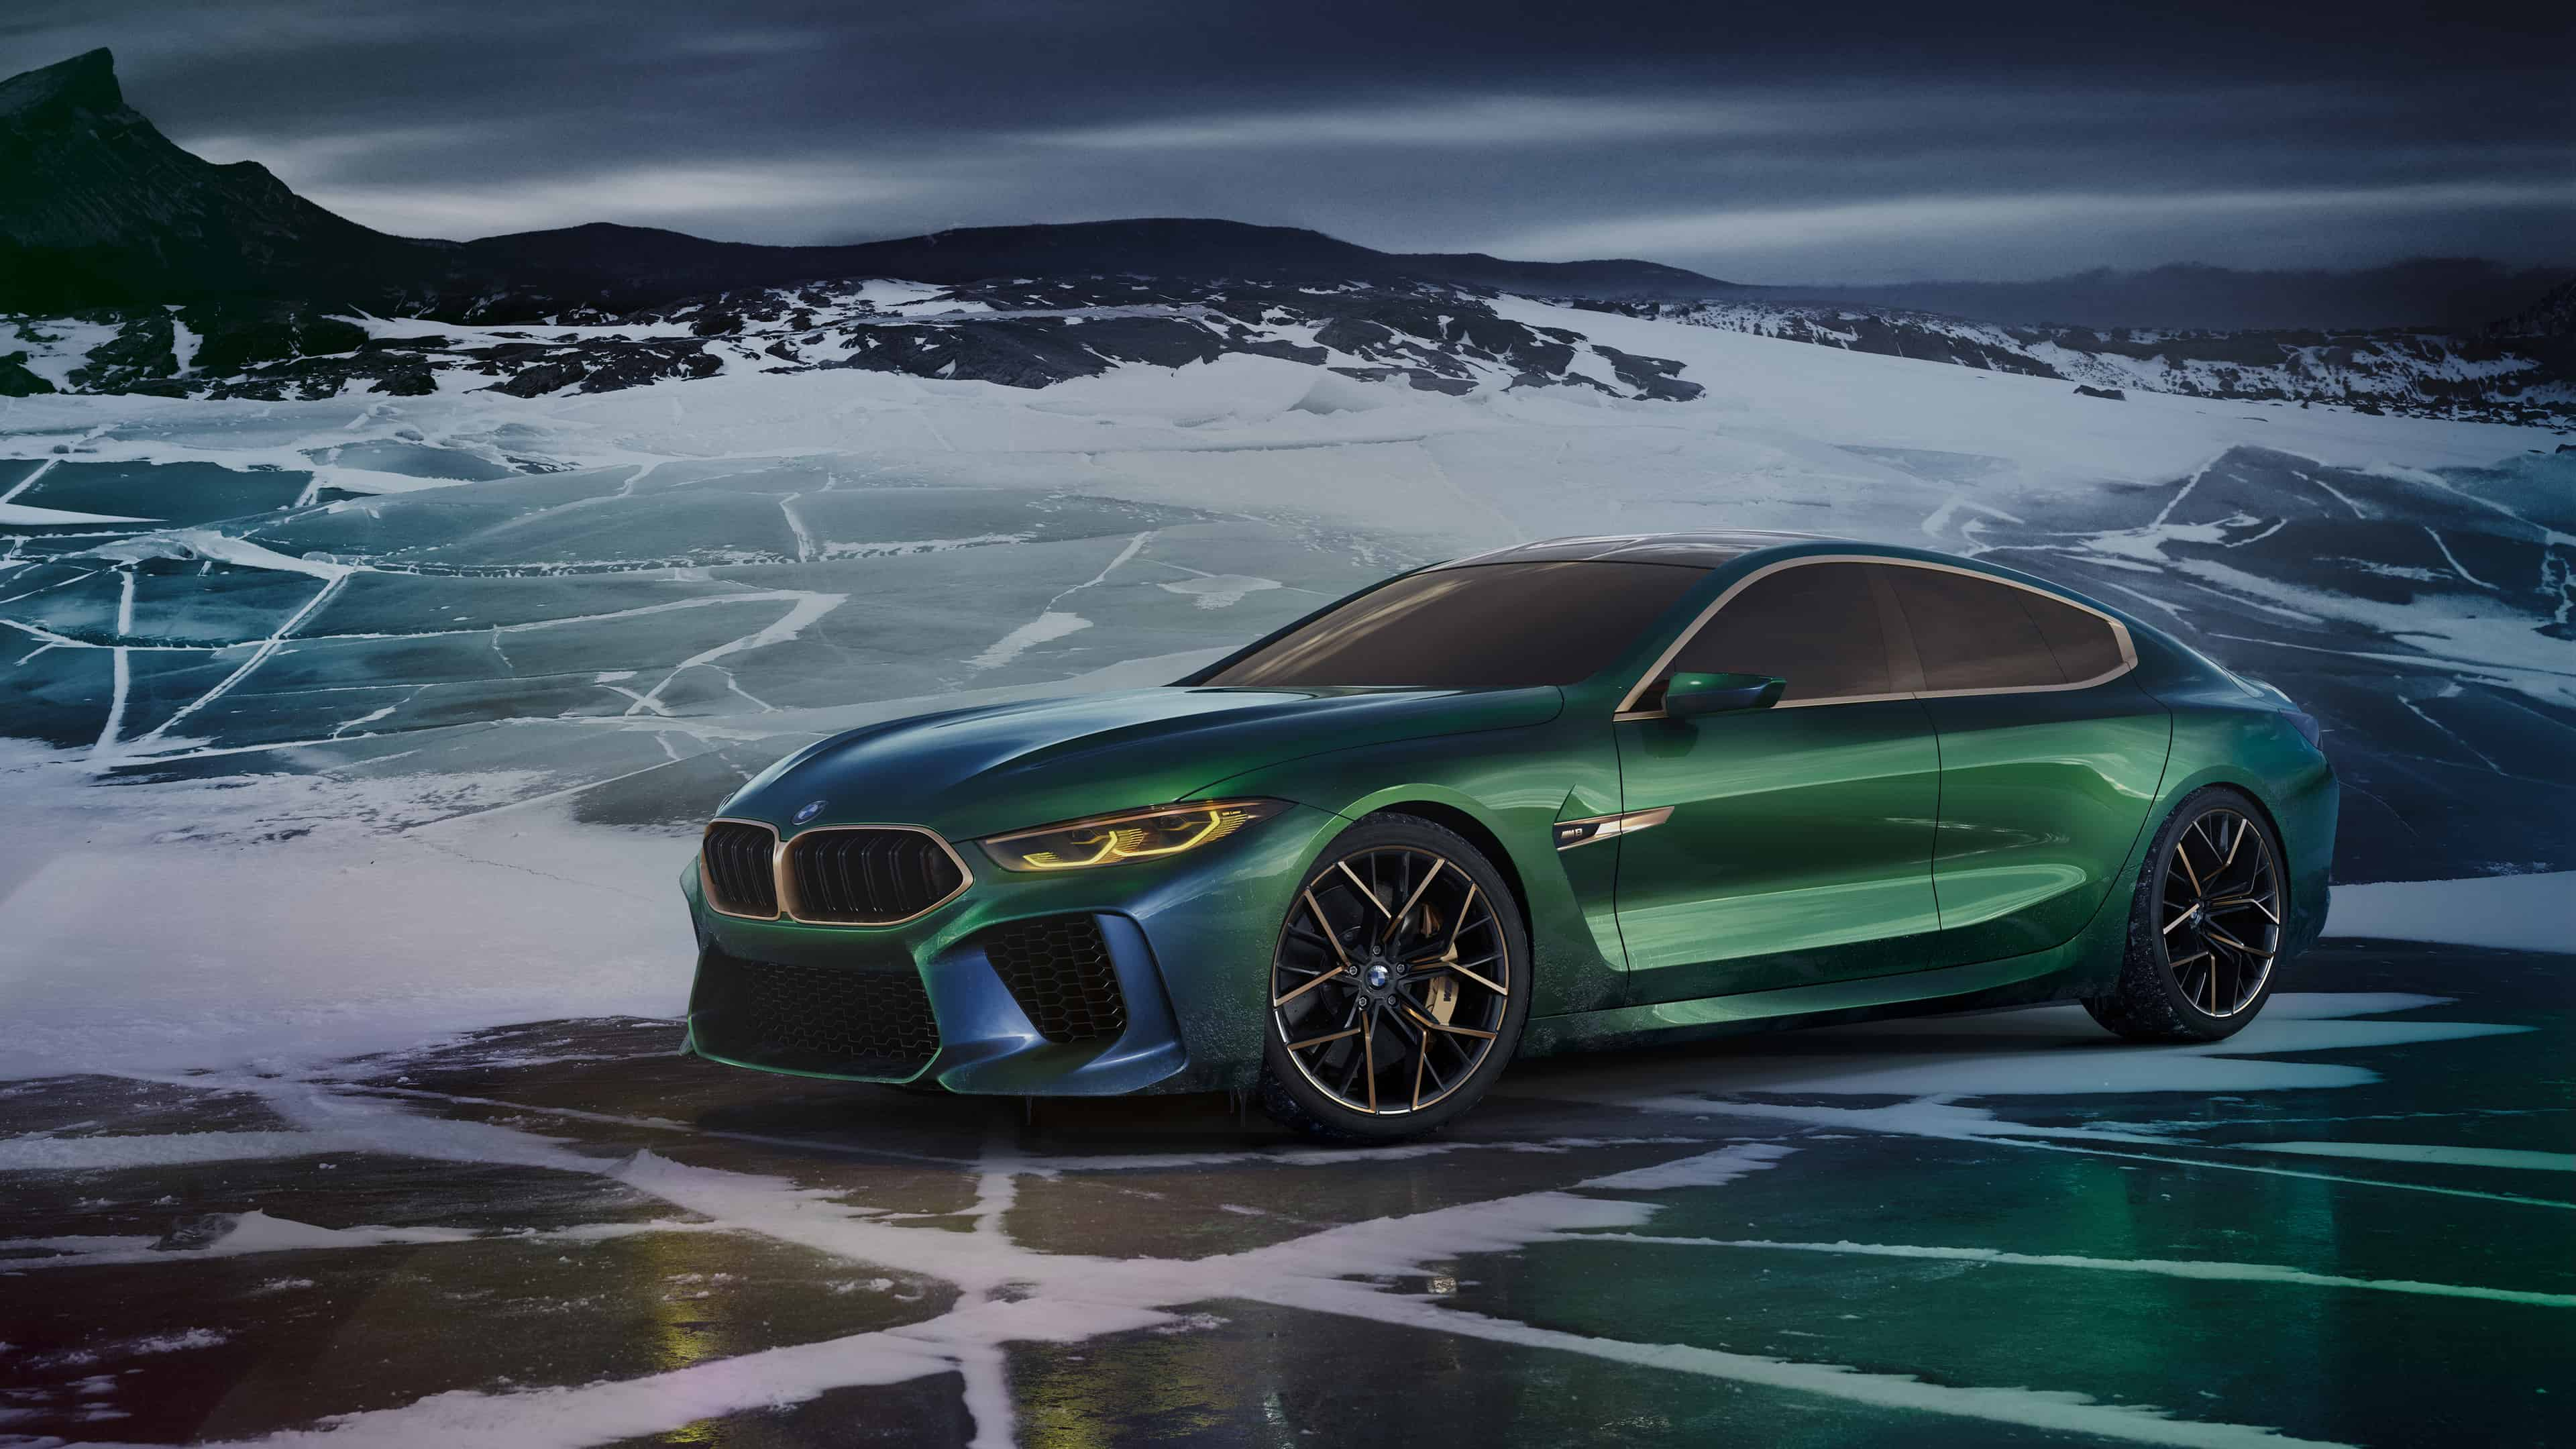 bmw concept m8 gran coupe uhd 4k wallpaper